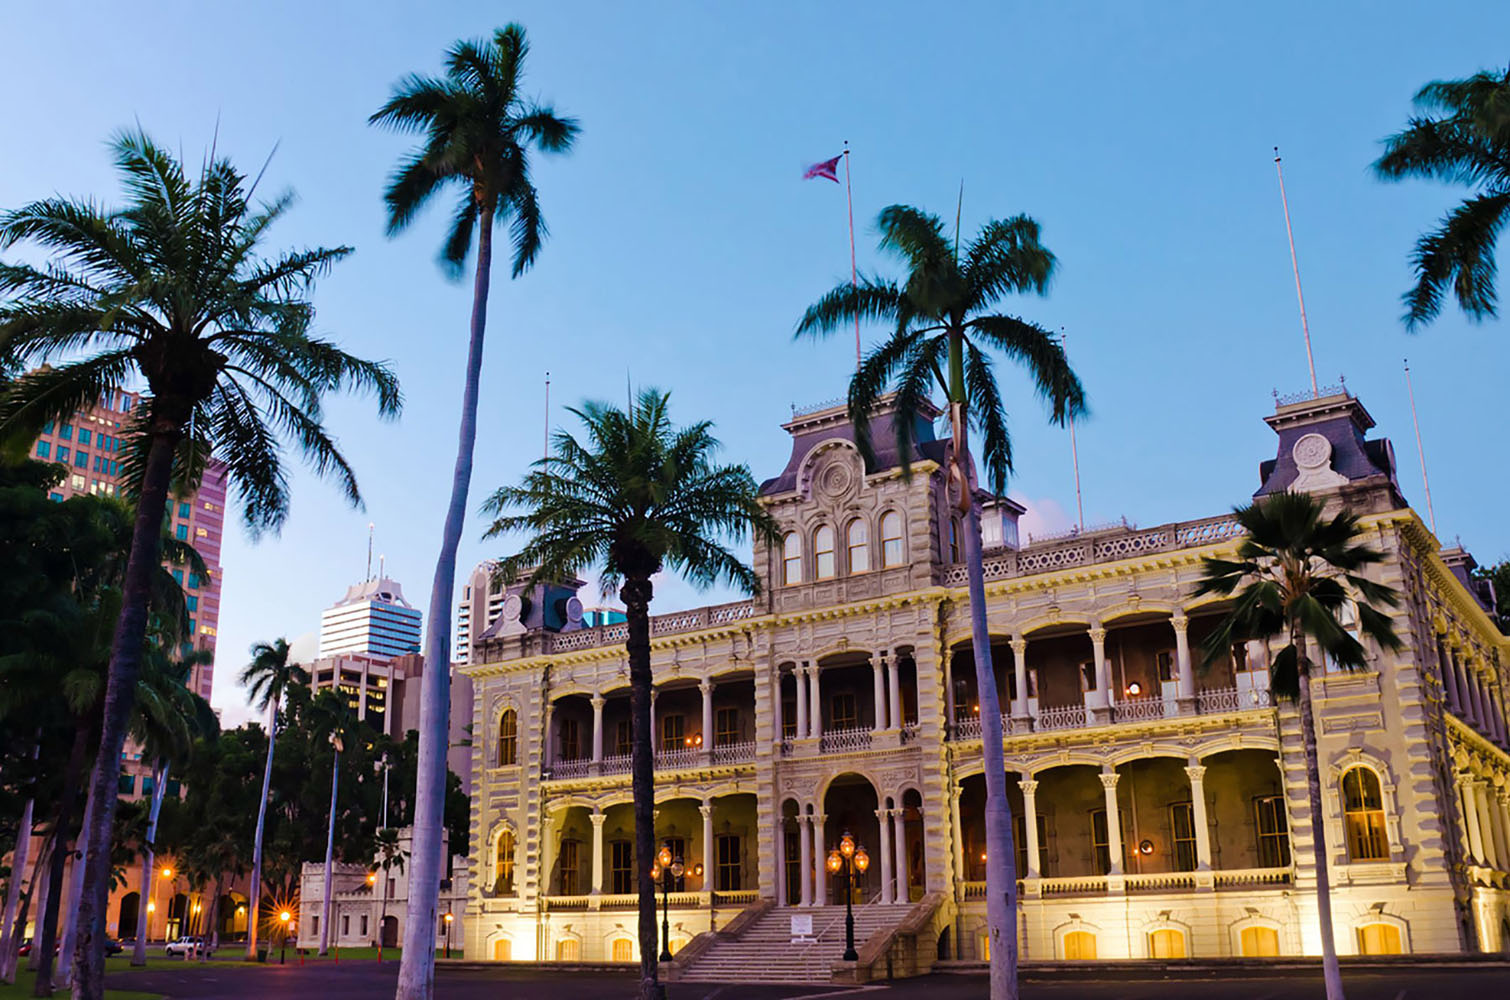 Iolani Palace in the early evening